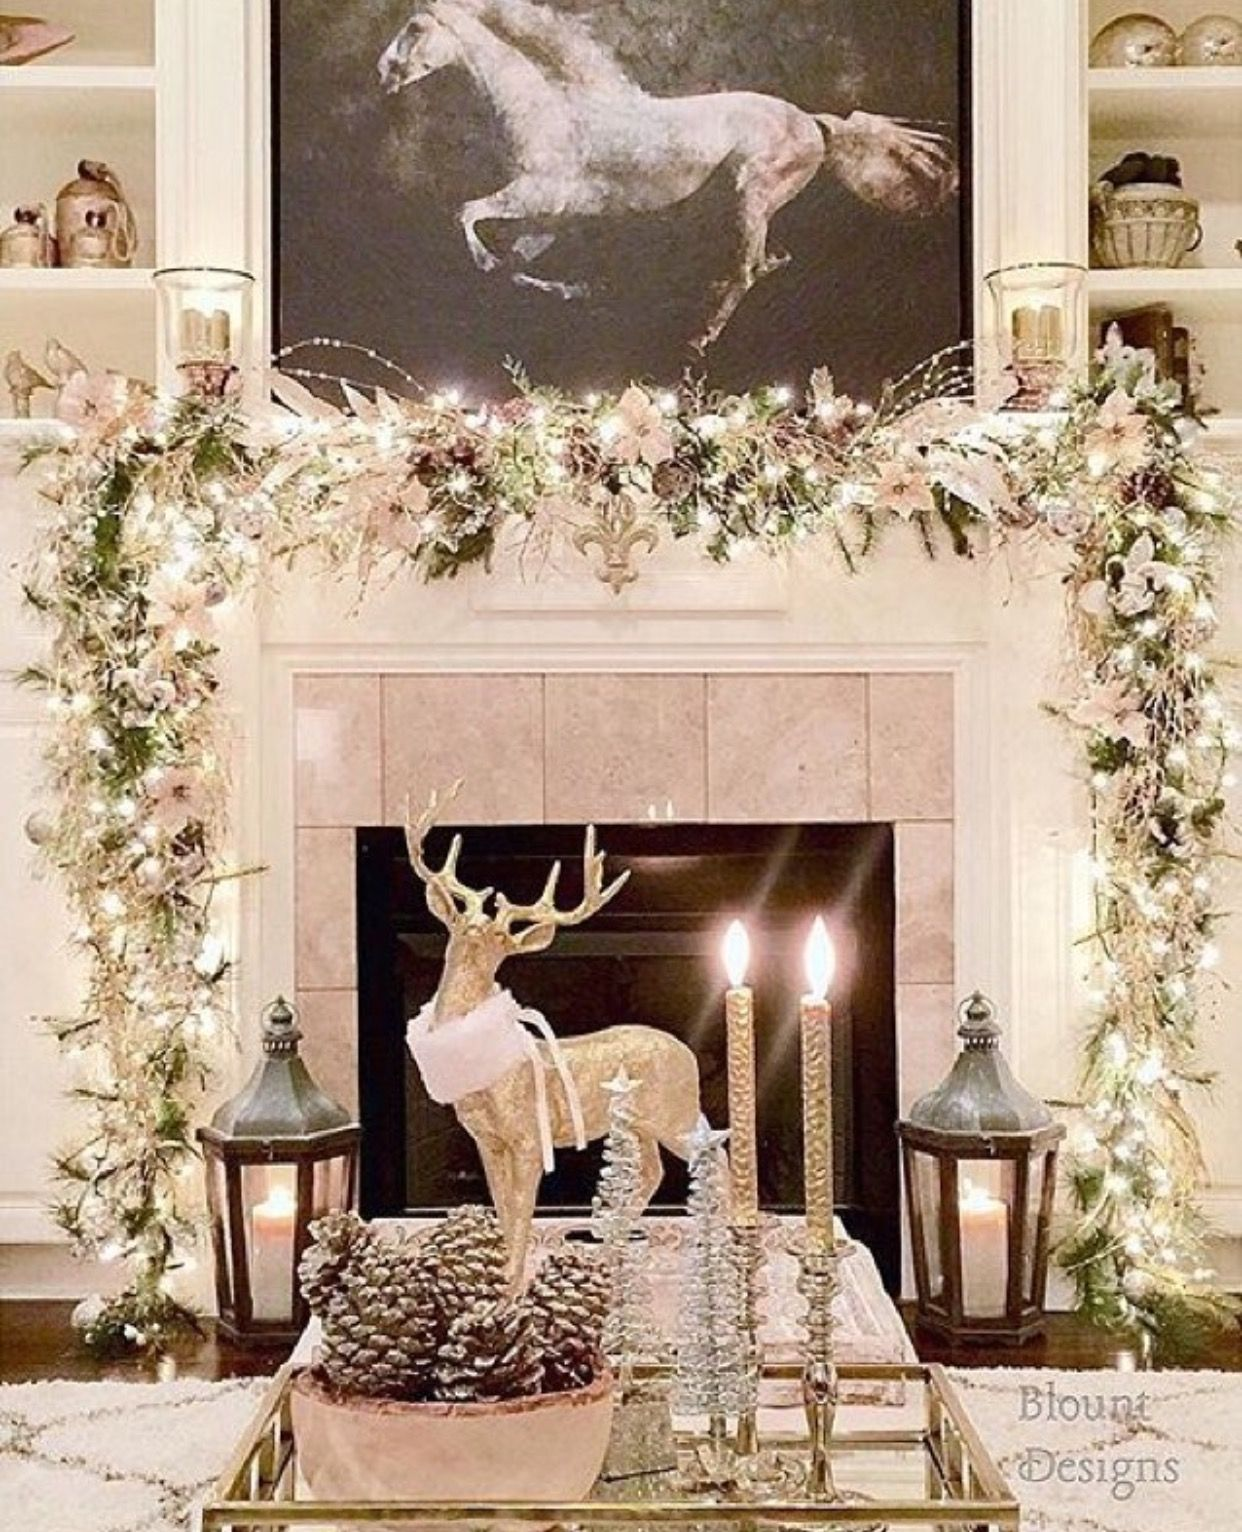 Admirable Beautiful White Christmas Mantle Love The Deer With The Download Free Architecture Designs Scobabritishbridgeorg